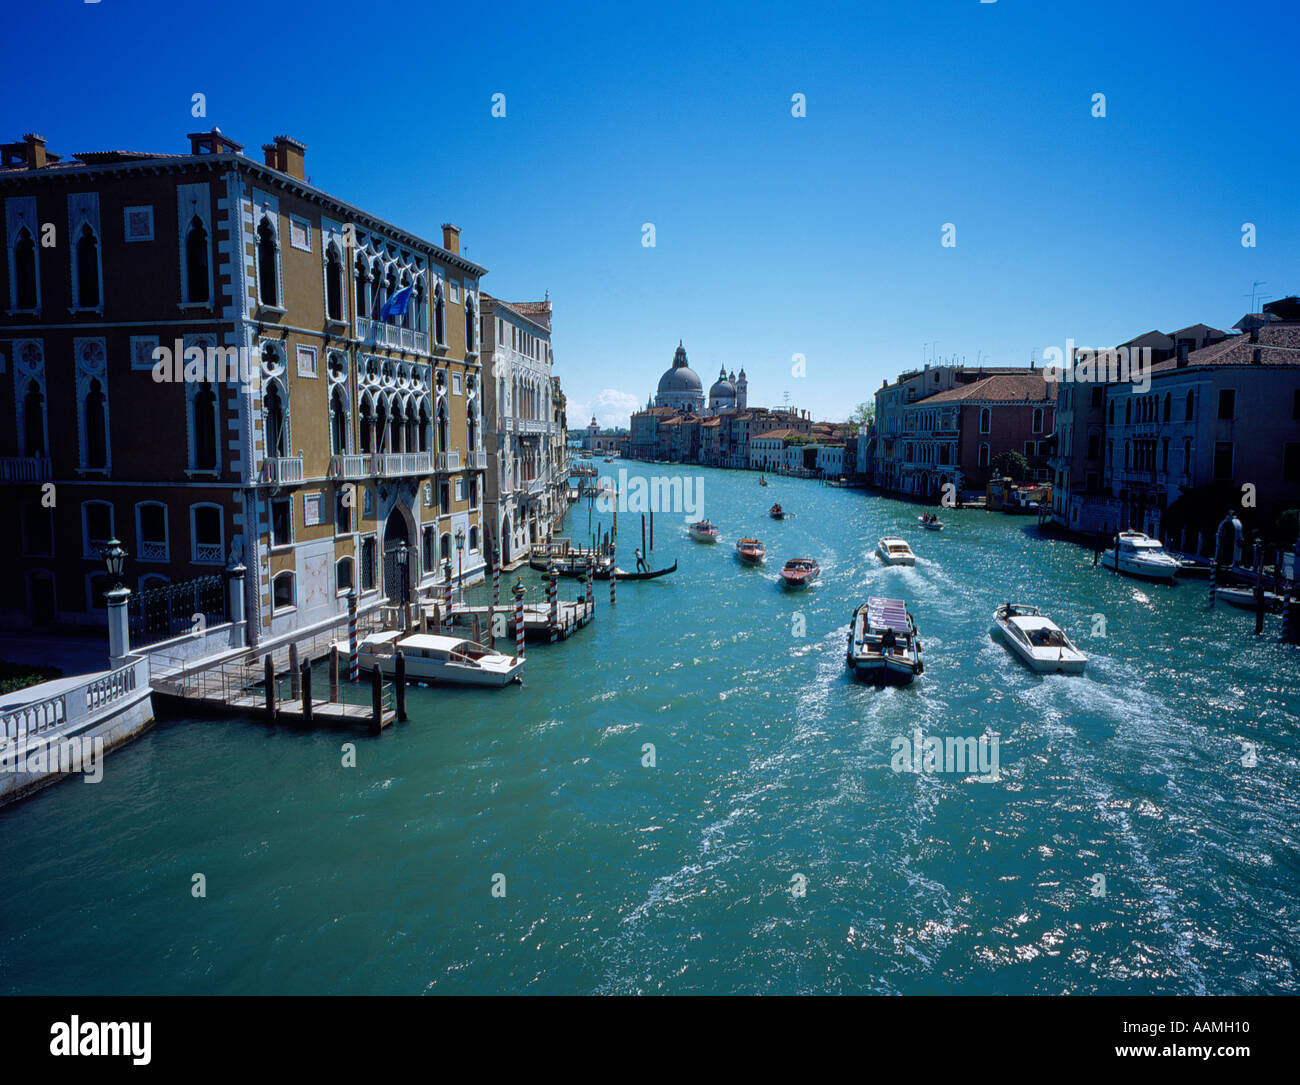 canal grande Venice Italy Europe. Photo by Willy Matheisl - Stock Image